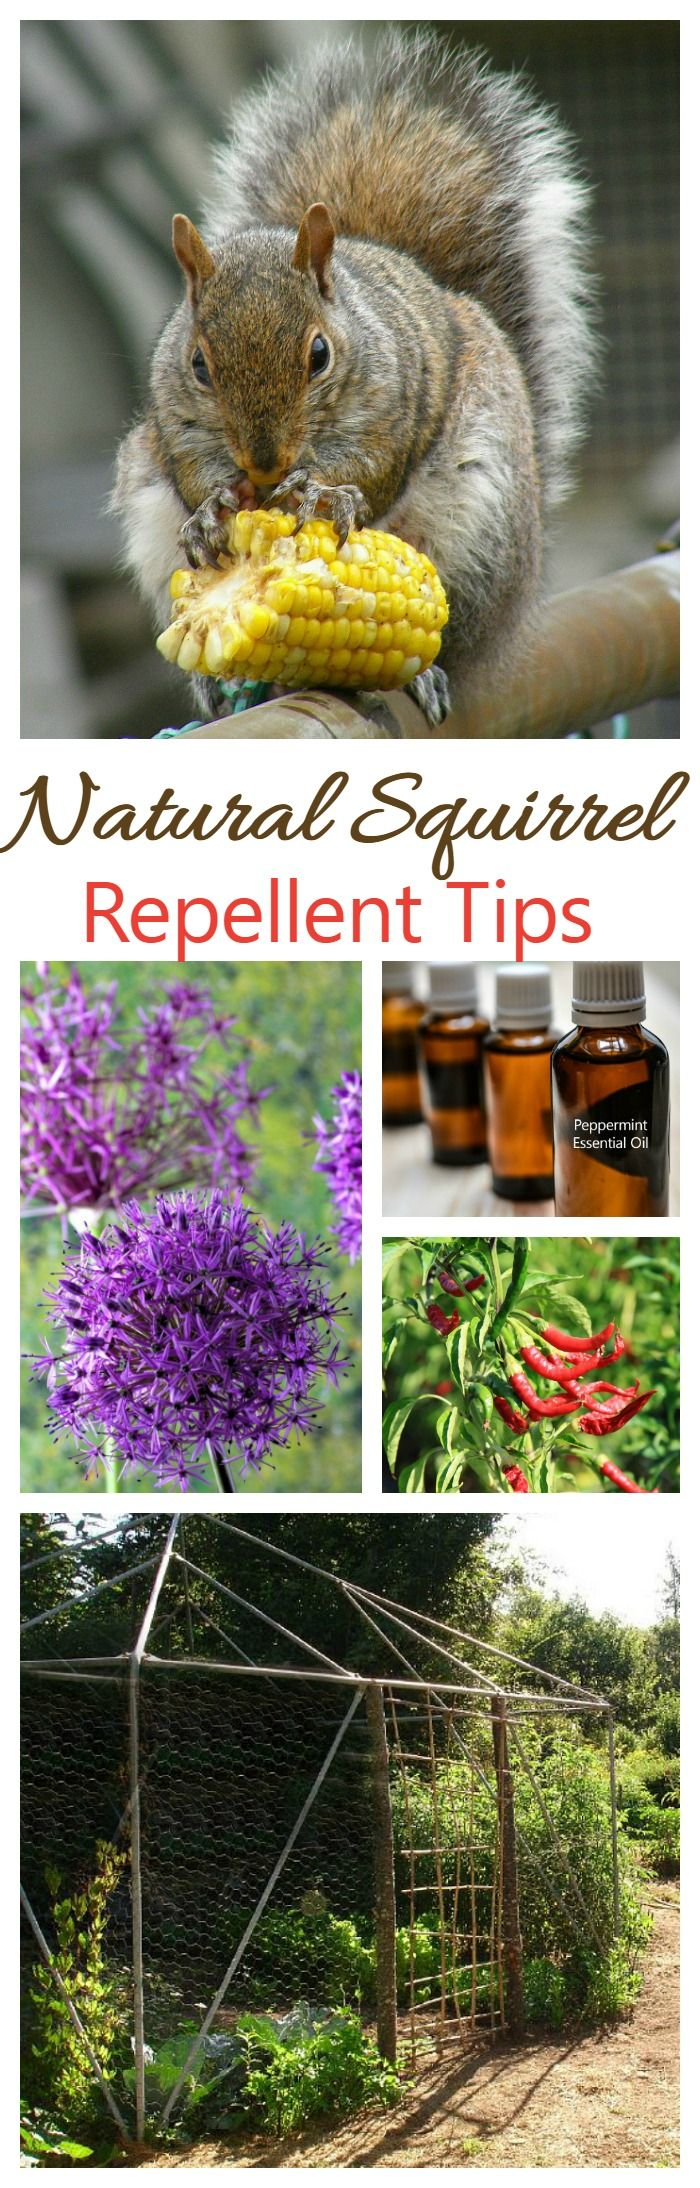 Natural Squirrel Repellent Ideas Keep Squirrels Out Of The Yard Squirrel Repellant Garden Pests Garden